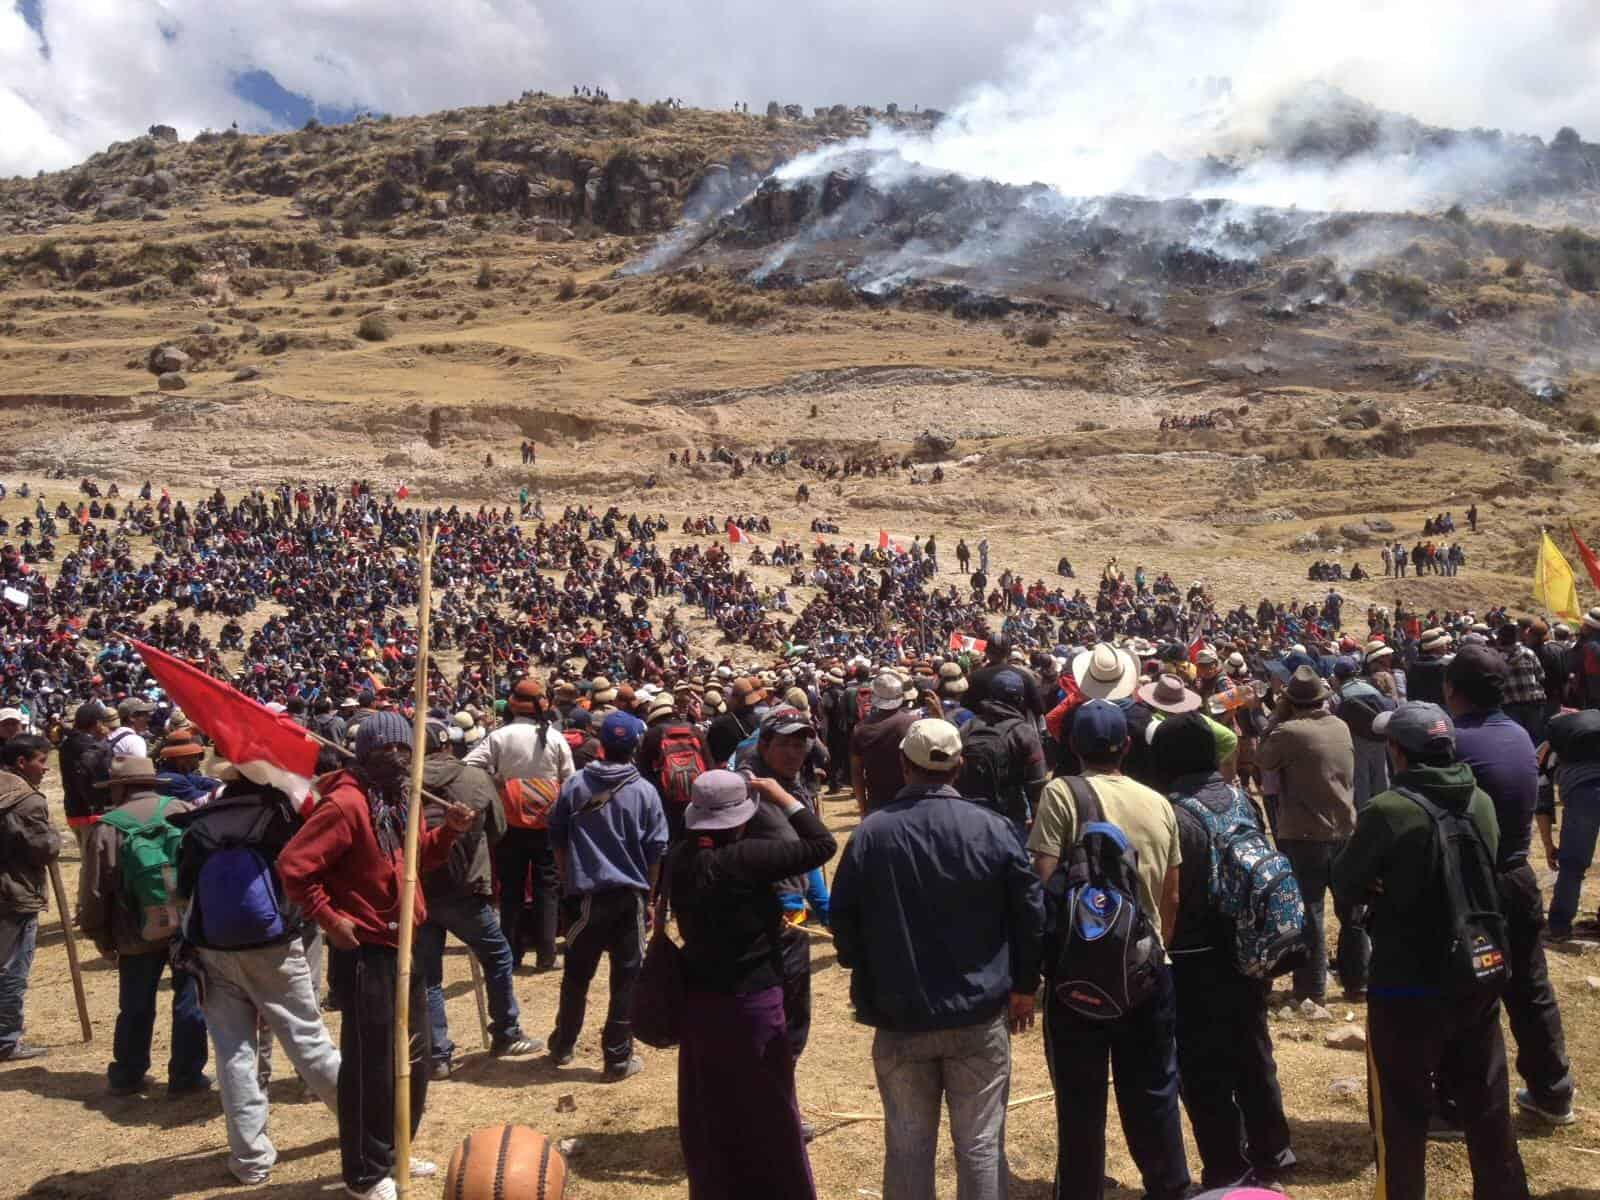 Protestors surround Las Bambas mine in Peru